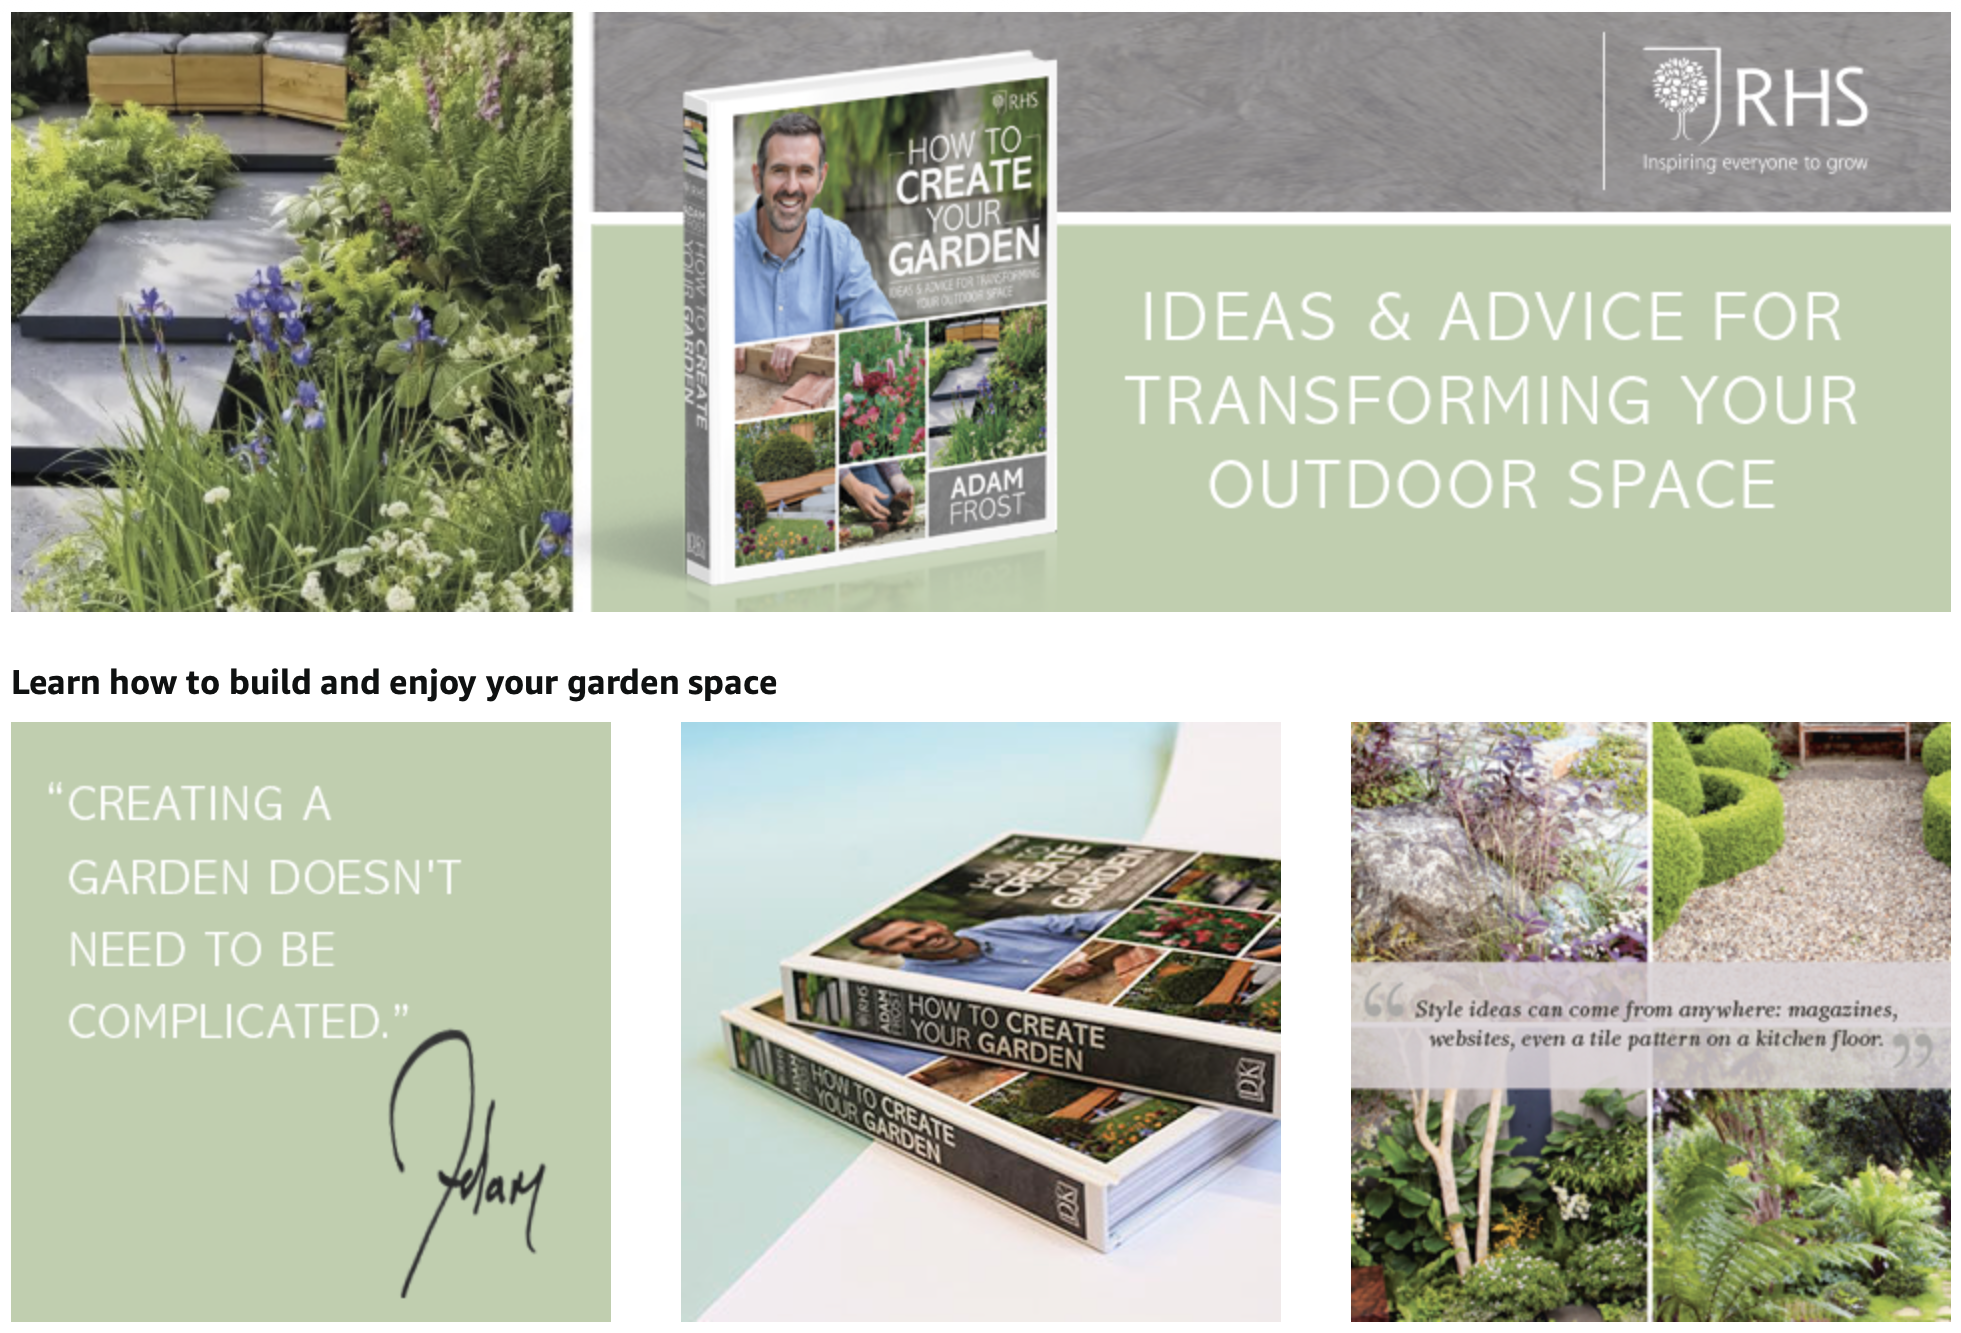 How to create your garden...